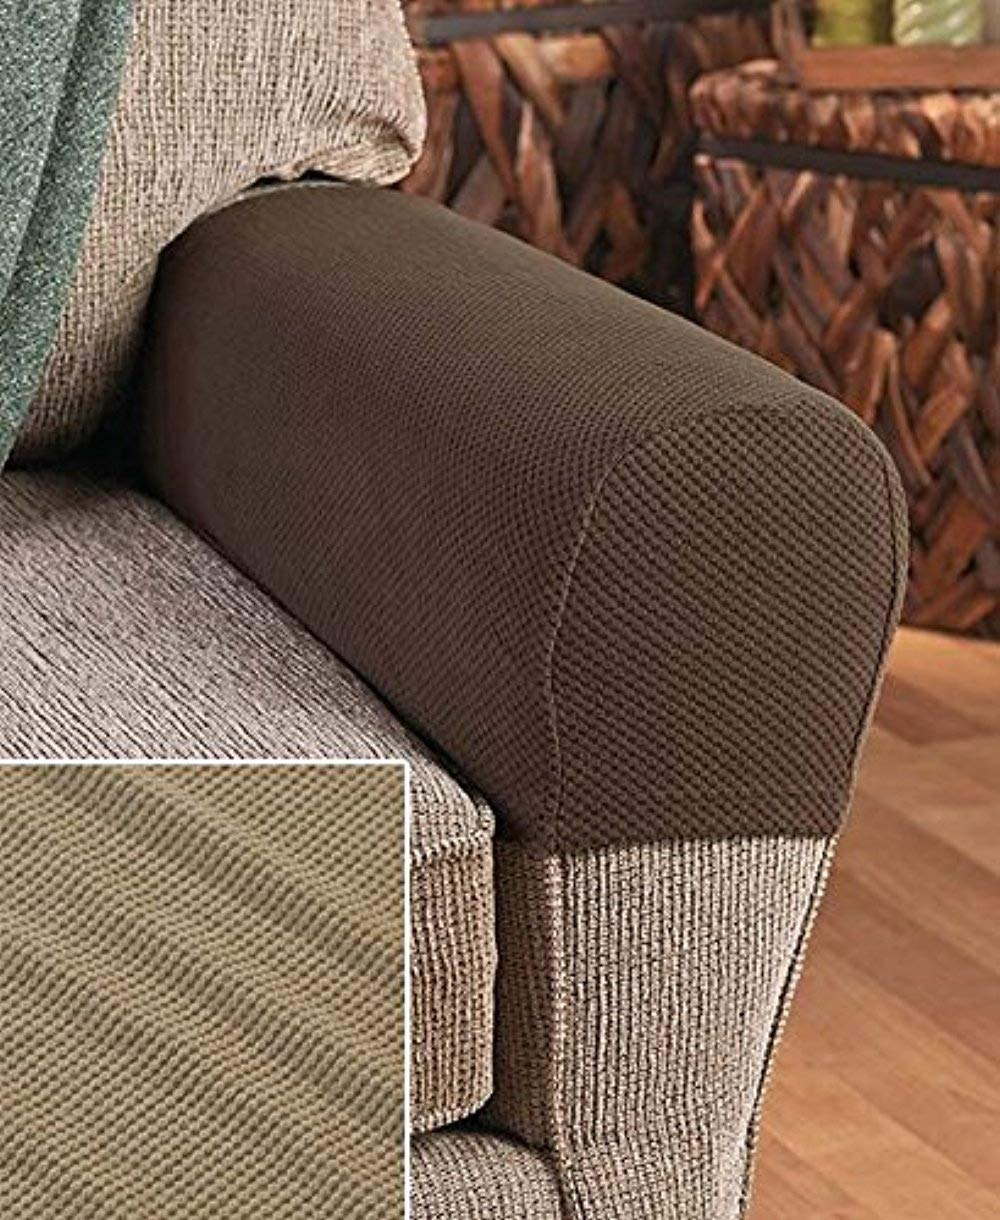 Set of 2 Stretch Armrest Covers (Chocolate) GetSet2Save